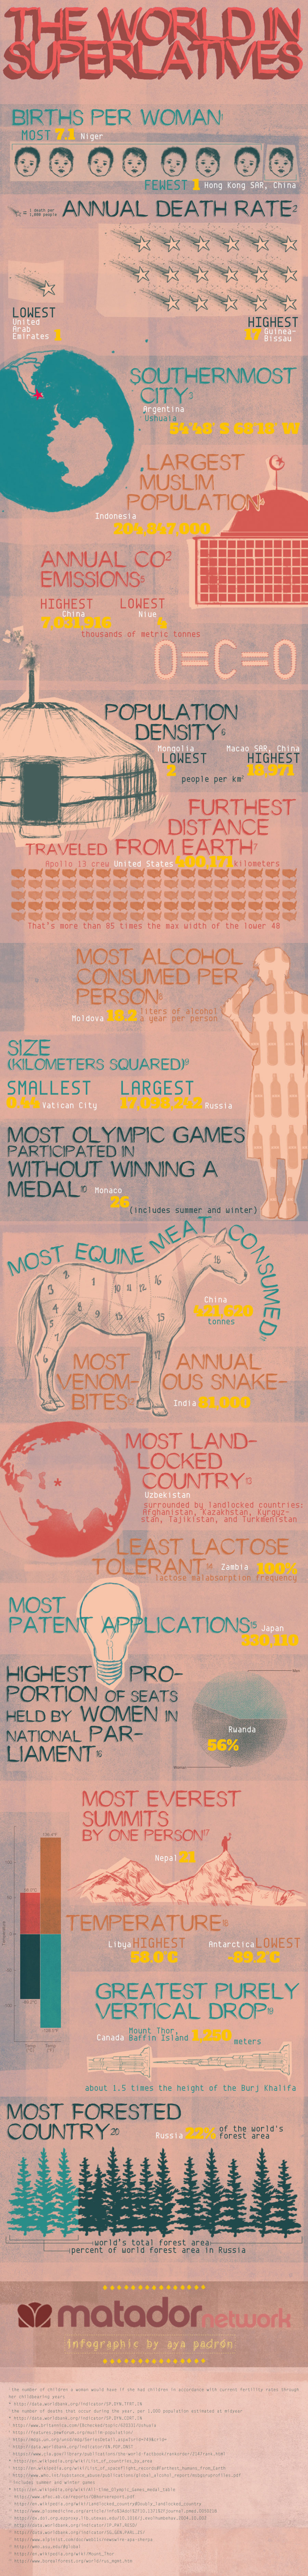 The World in Superlatives Infographic